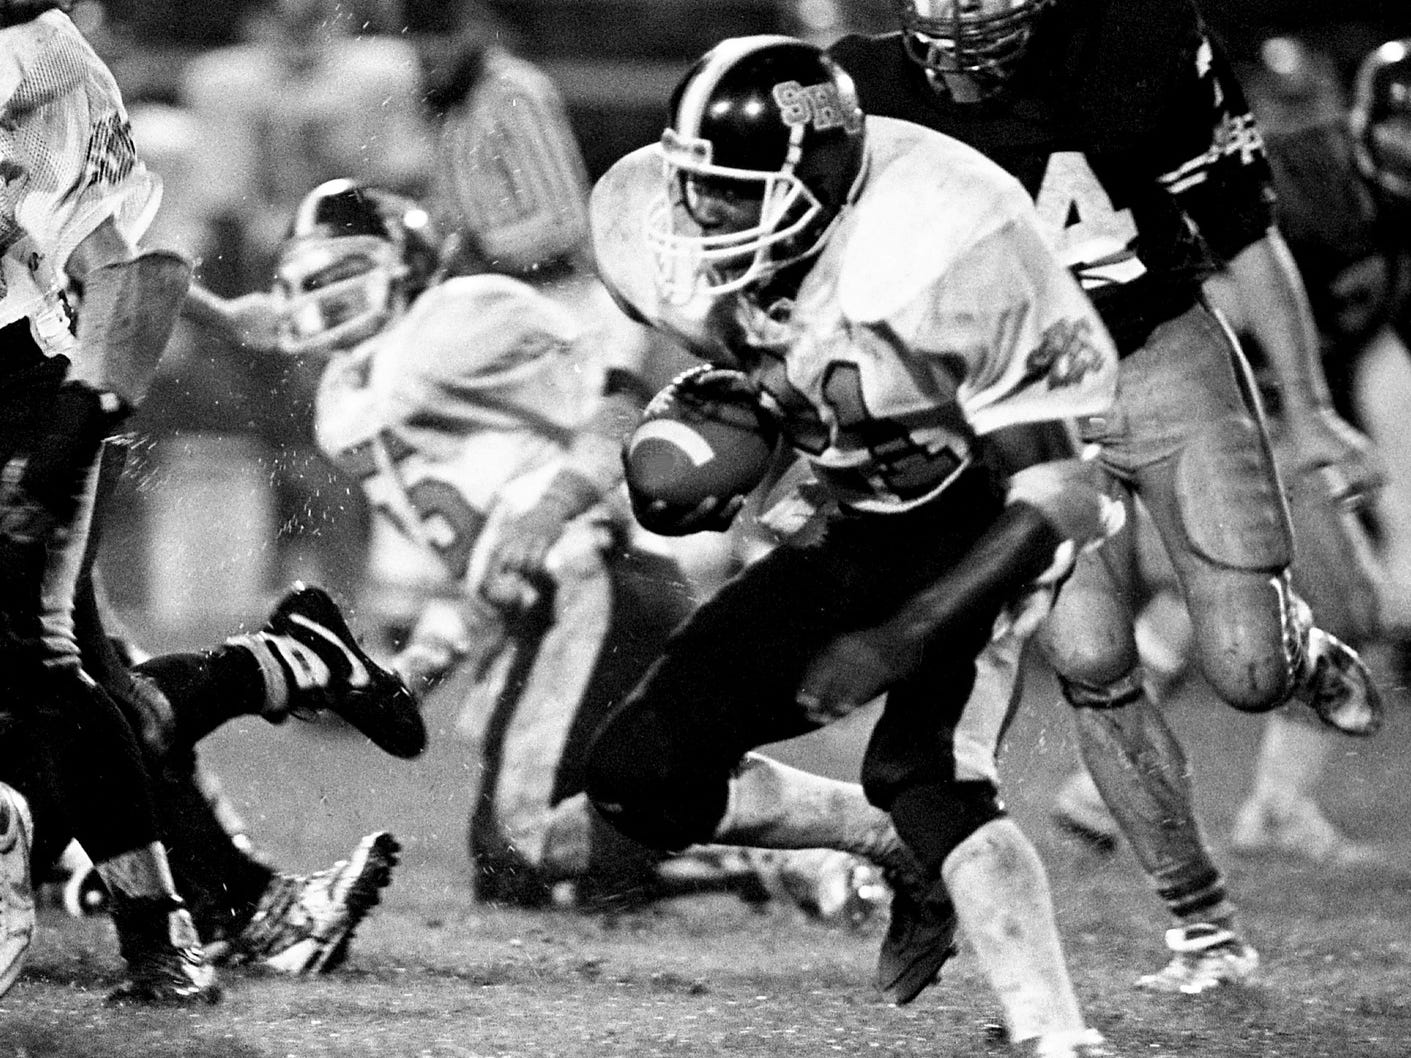 Joe Campbell, Stratford RB/DB 1985-87